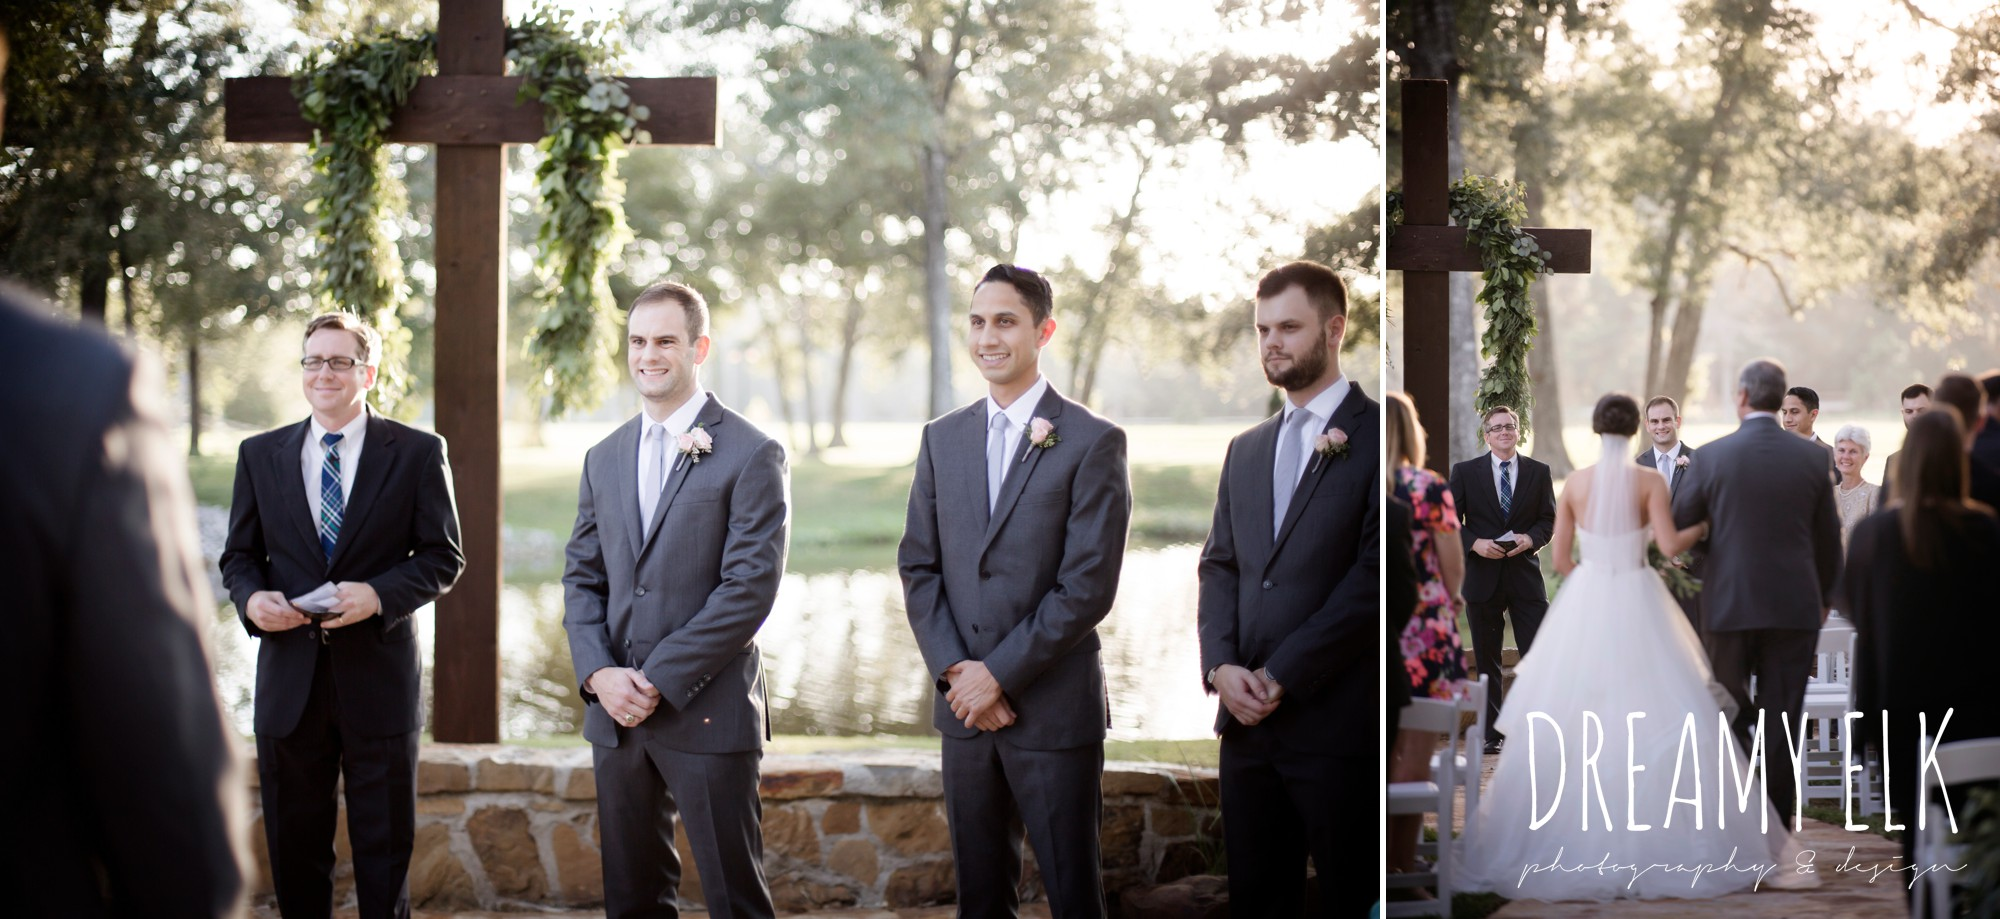 bride walking down the aisle, groom's reaction to bride, outdoor fall october wedding photo, blush and gray wedding, balmorhea weddings and events, dreamy elk photography and design, austin texas wedding photographer